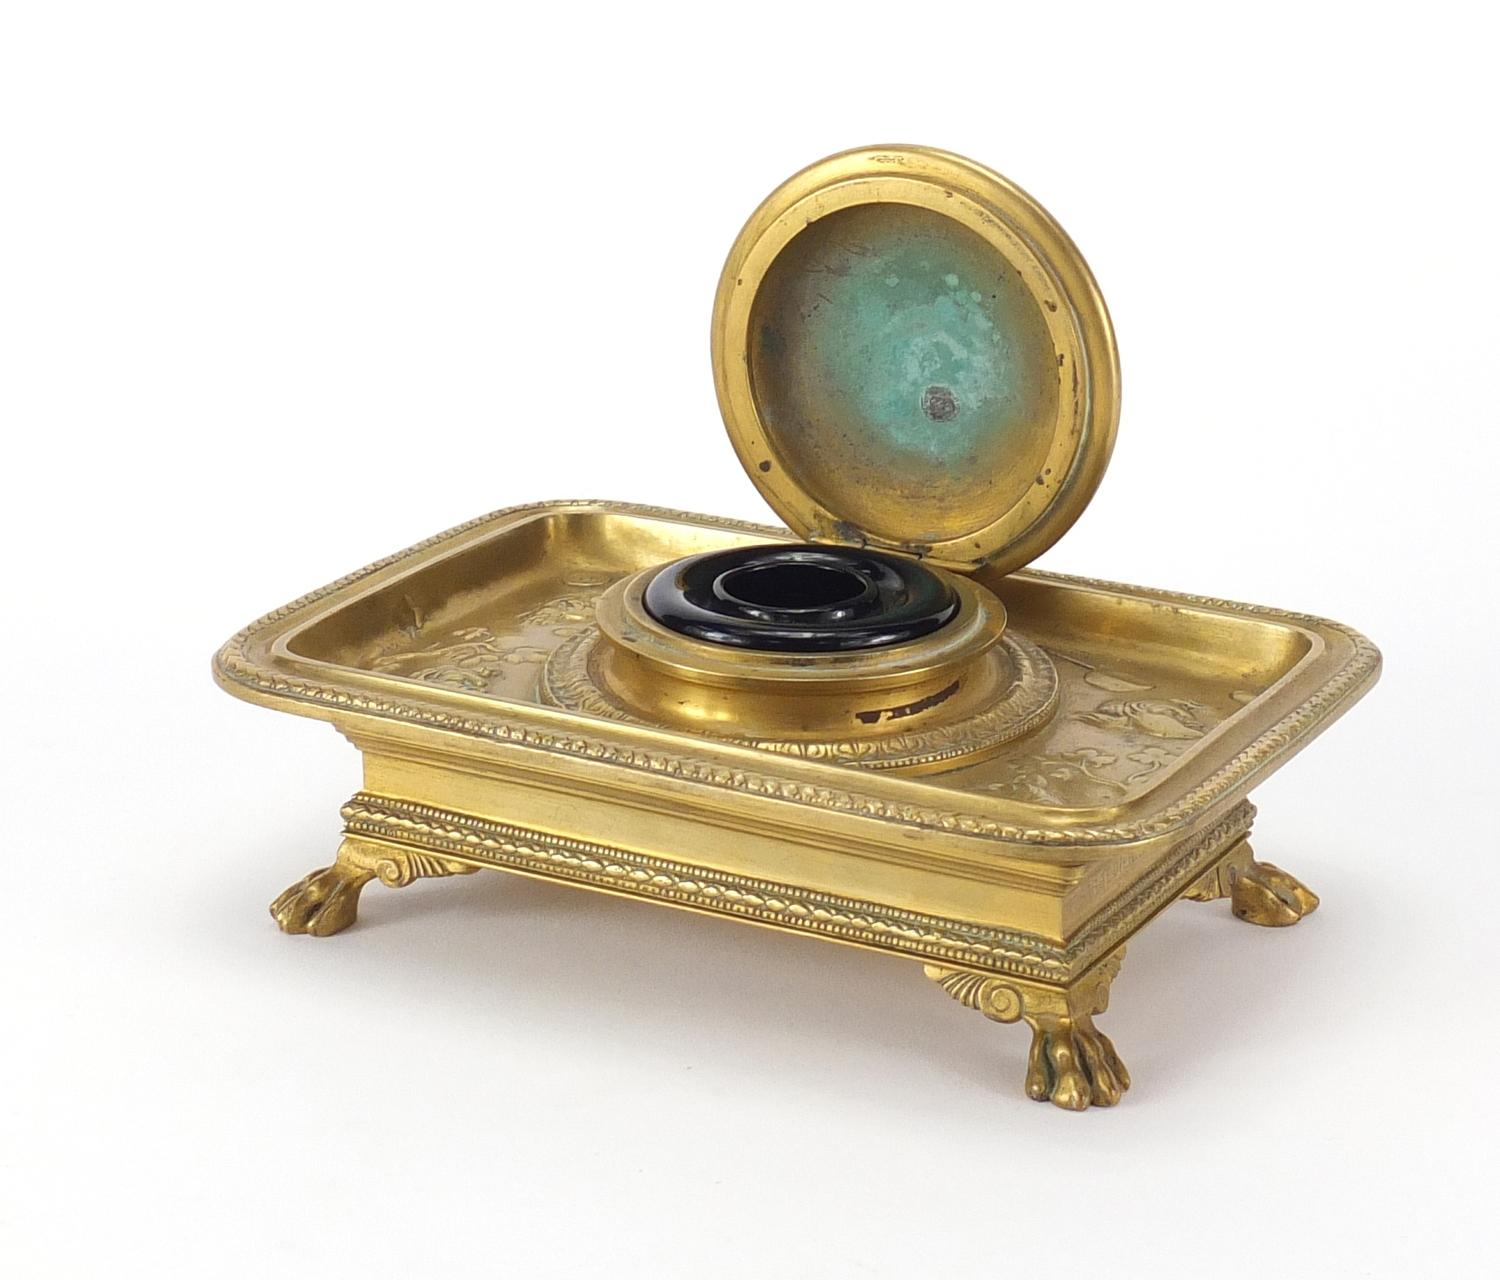 Lot 19 - 19th century French Ormolu desk inkwell with blue glass liner by Ferdinard by Barbedienne